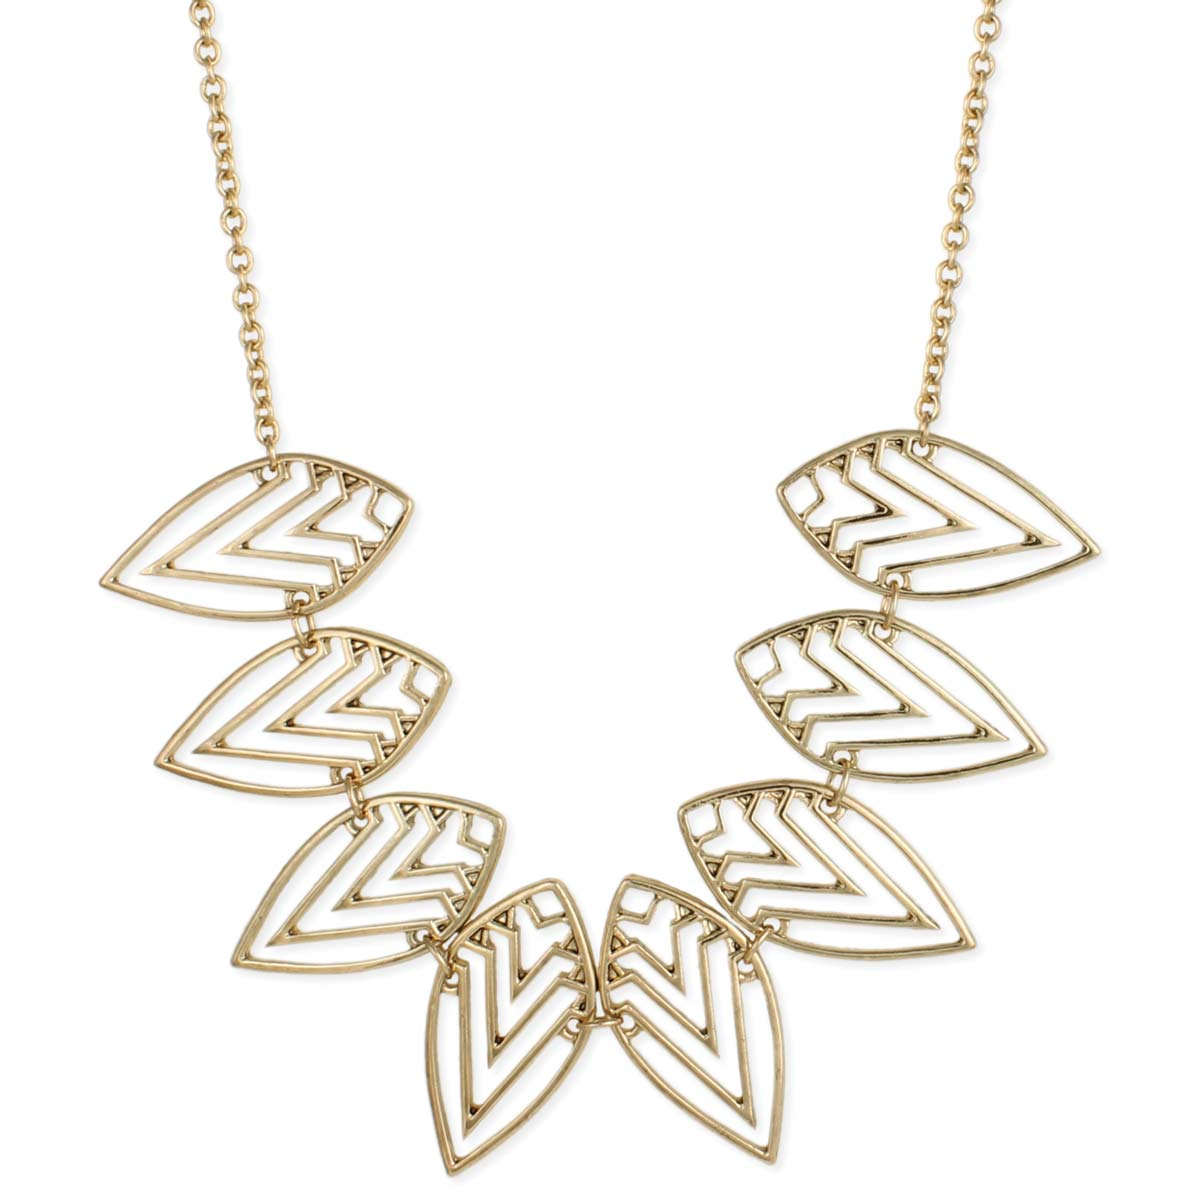 Gold Geometric Southwest Bib Necklace